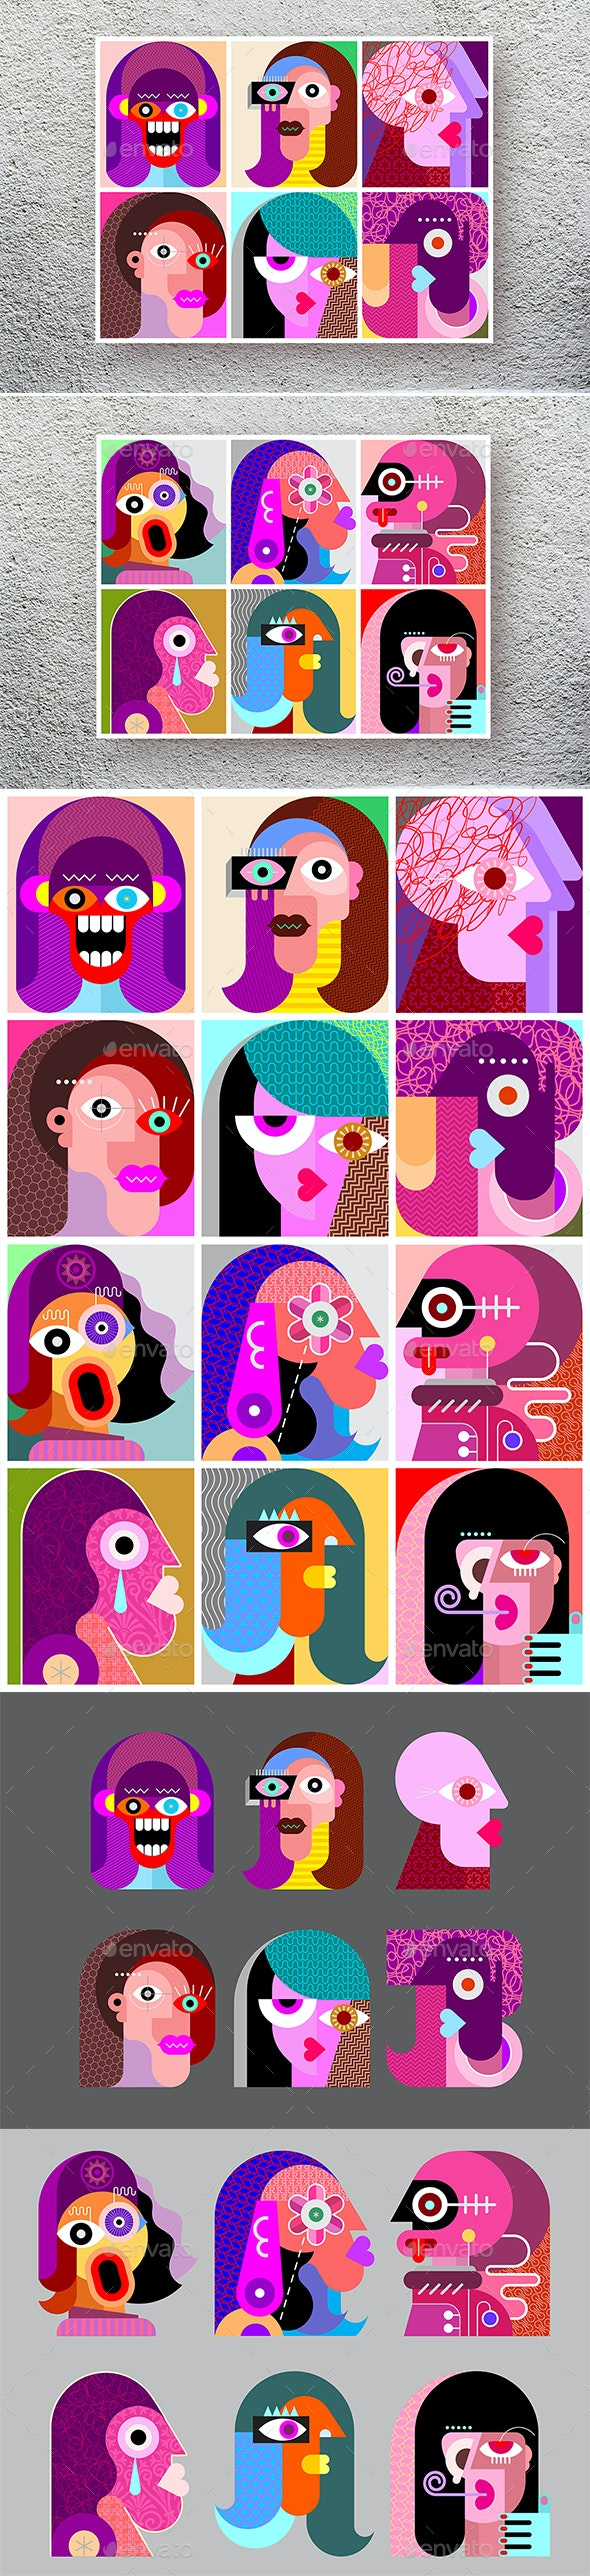 Twelve Abstract Vector Characters - People Characters